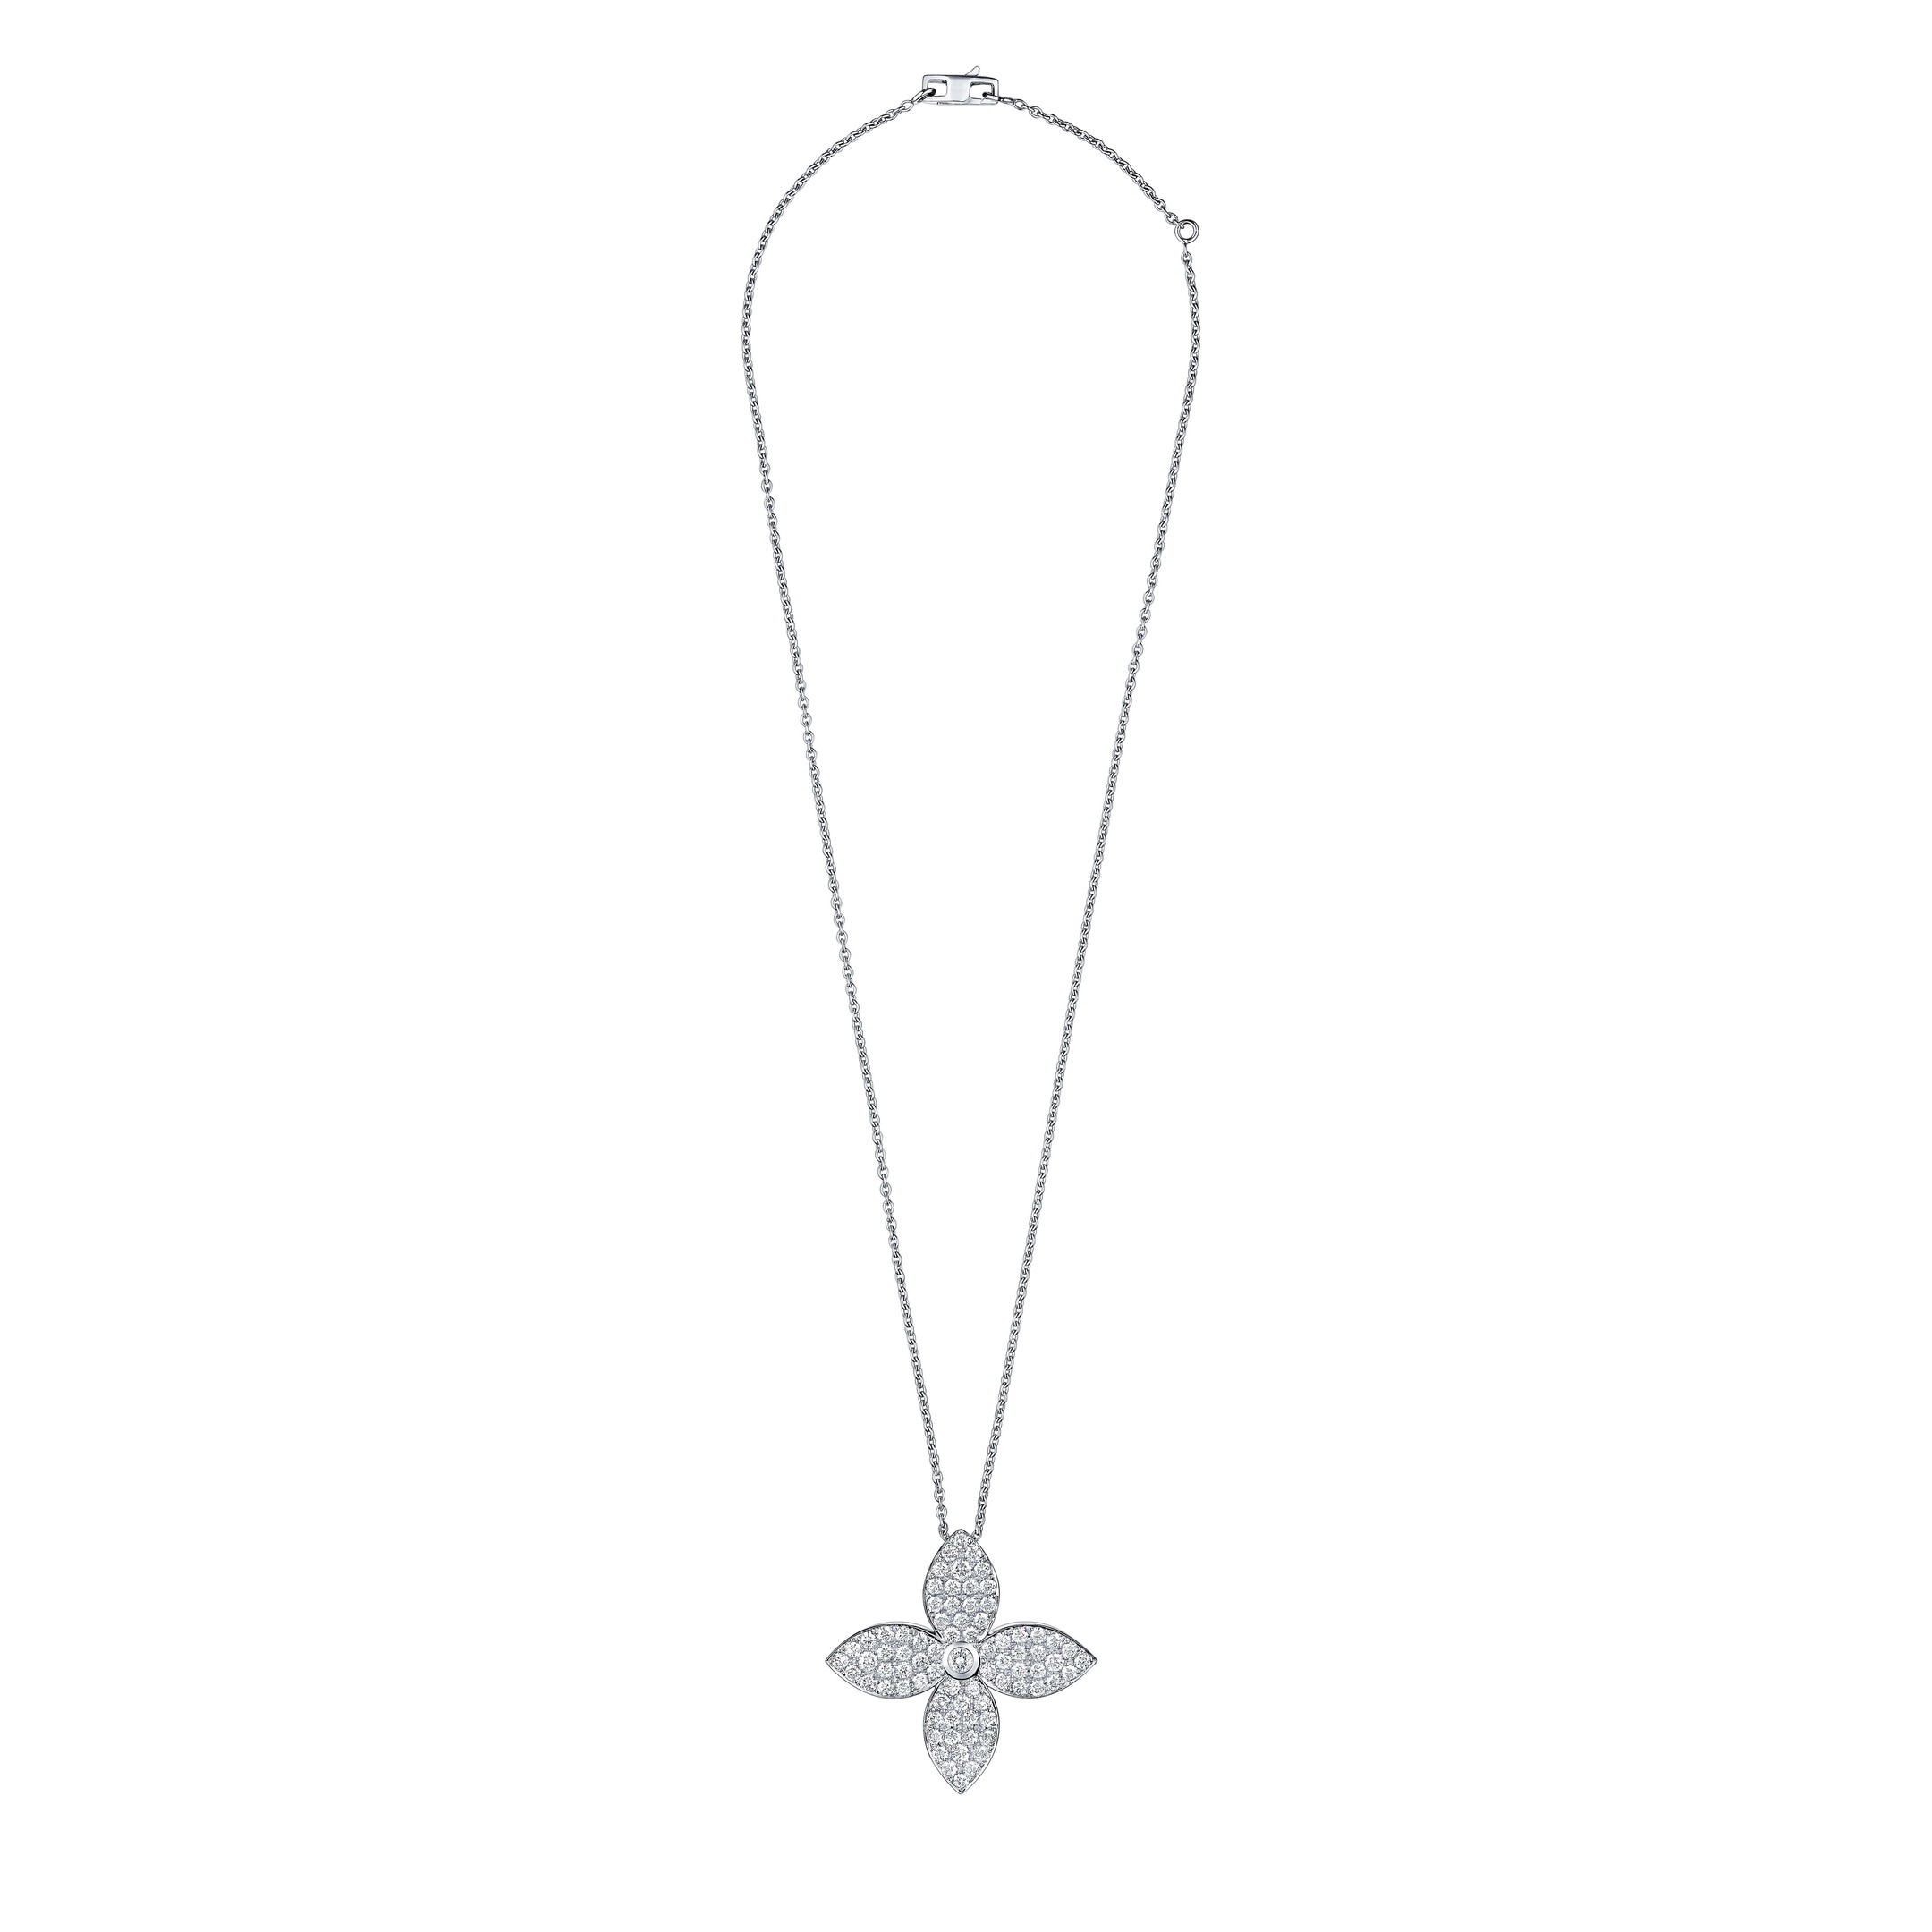 This Monogram Star pendant necklace recreates the iconic Louis Vuitton star-shaped flower in white gold and diamonds.